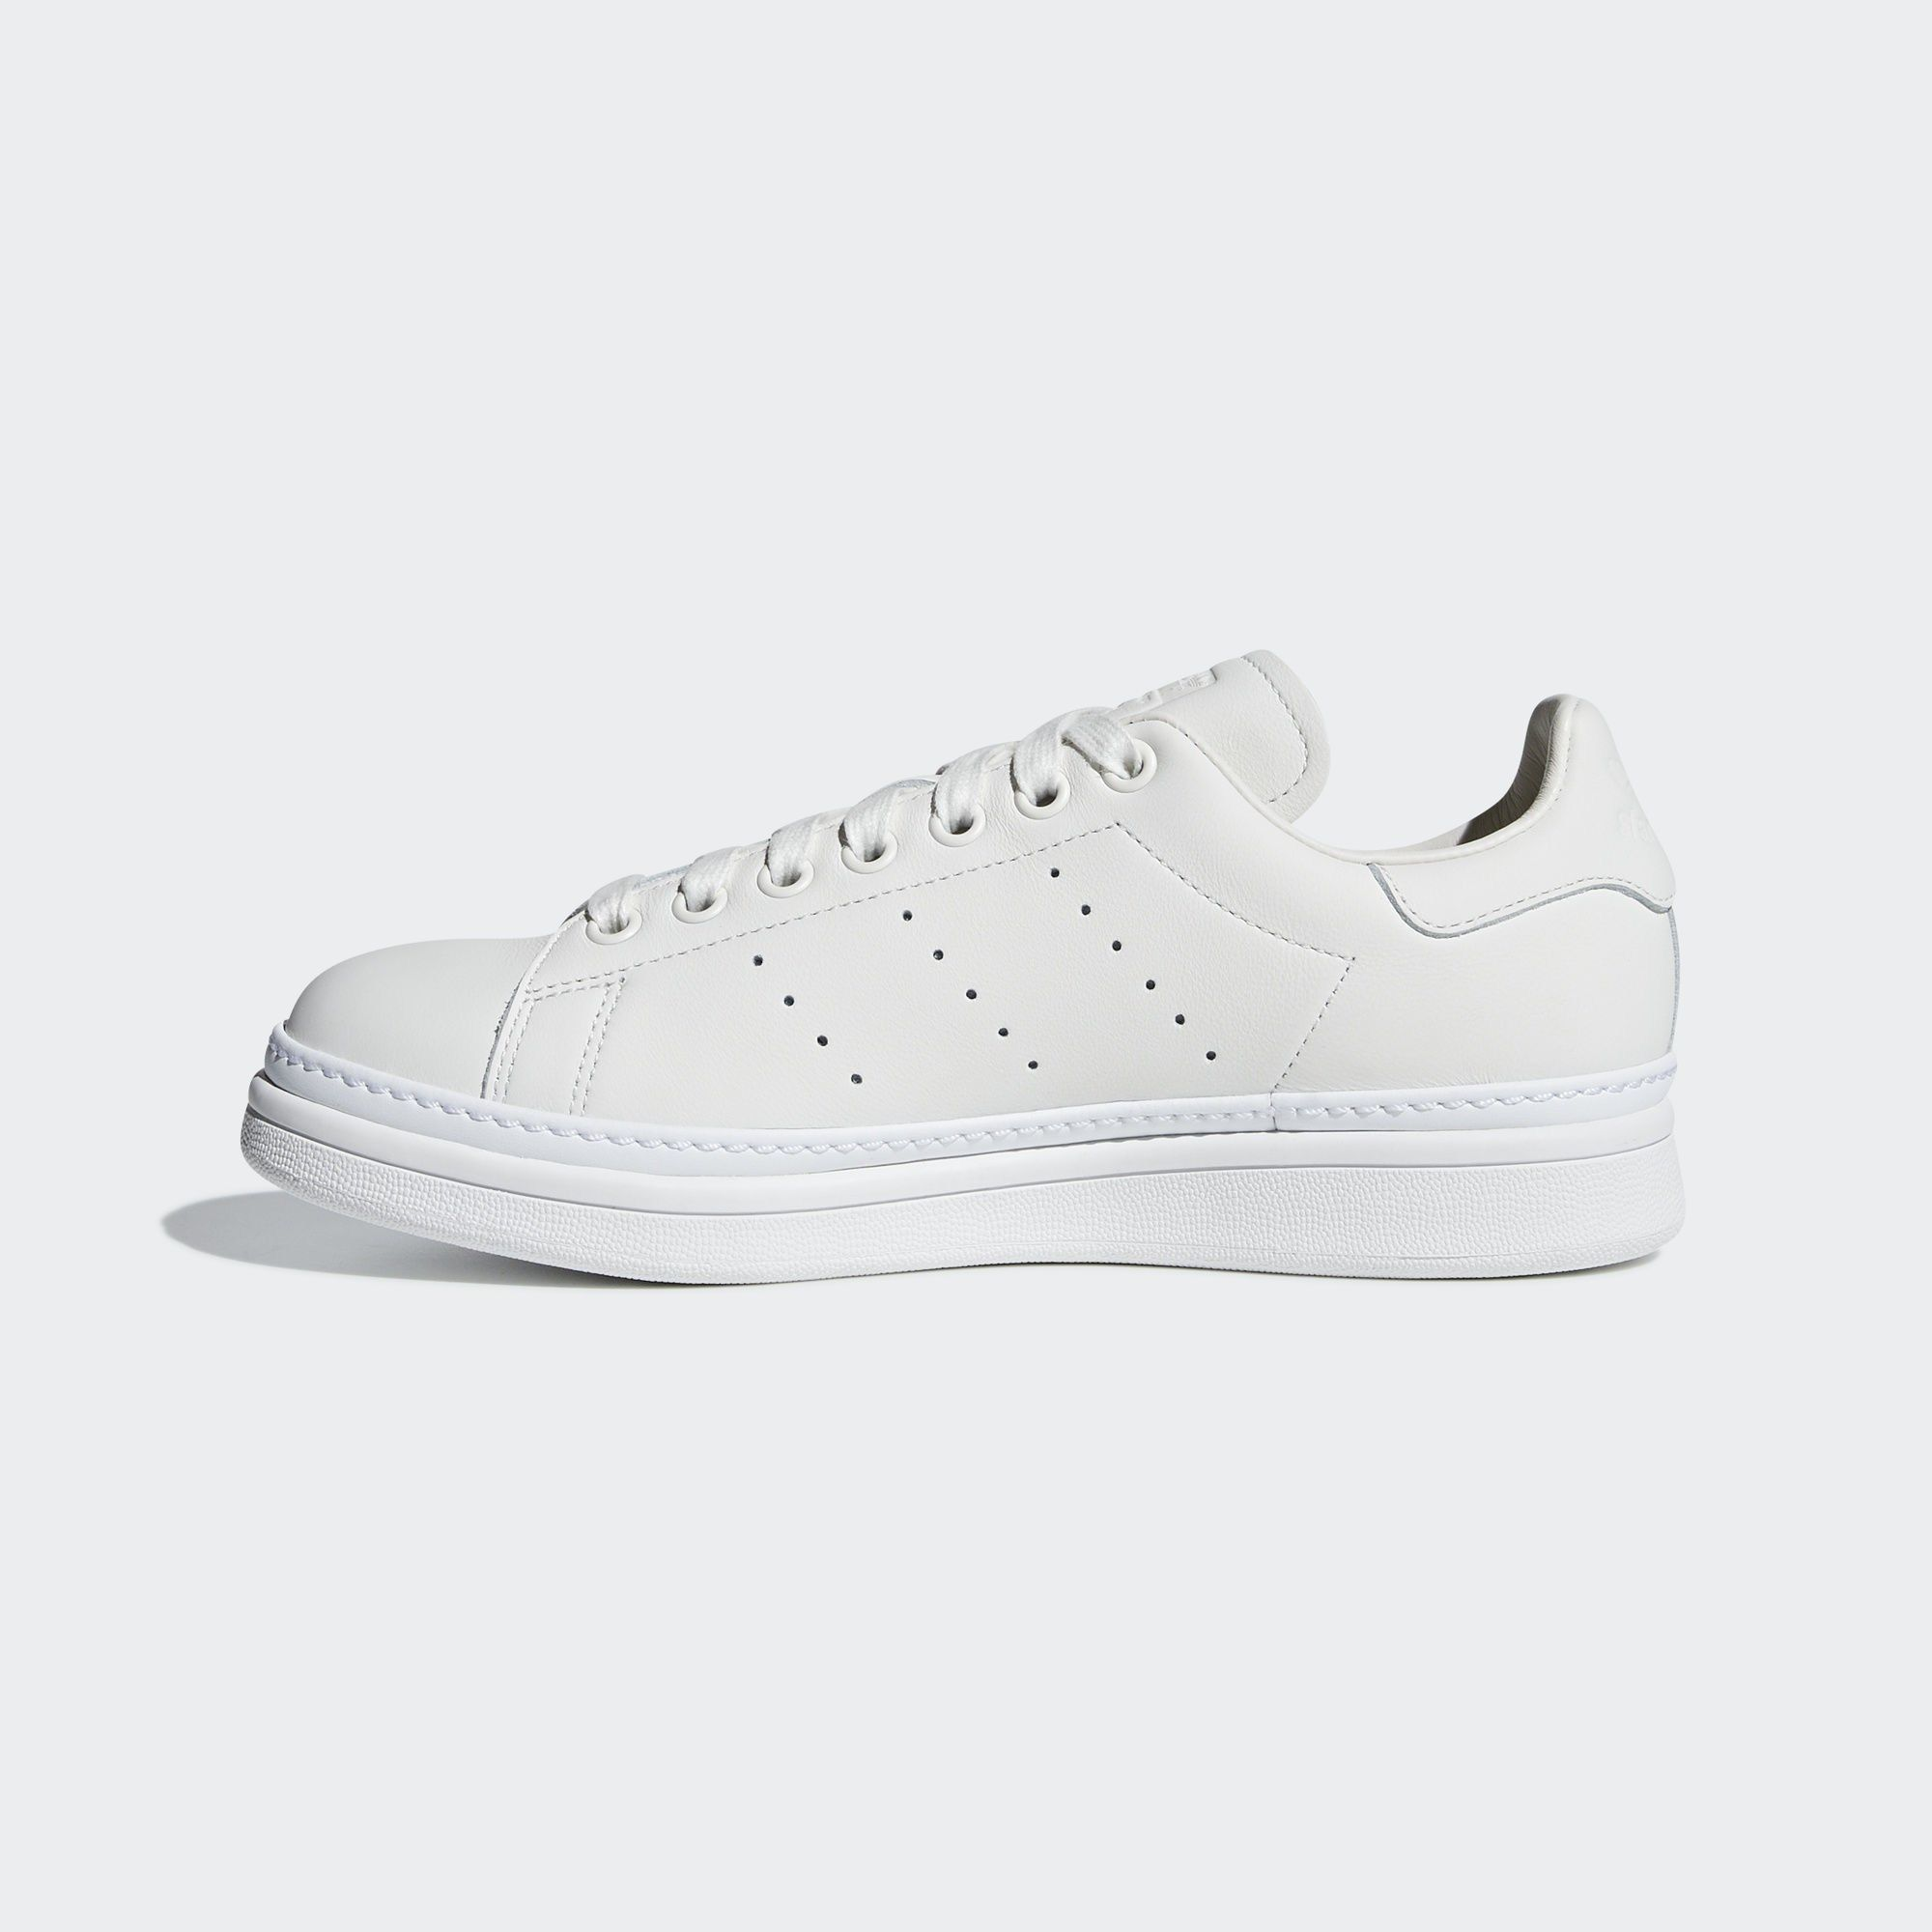 Damen ADIDAS ORIGINALS Sneaker Stan Smith weiß New Bold weiß Smith ... 2d882b